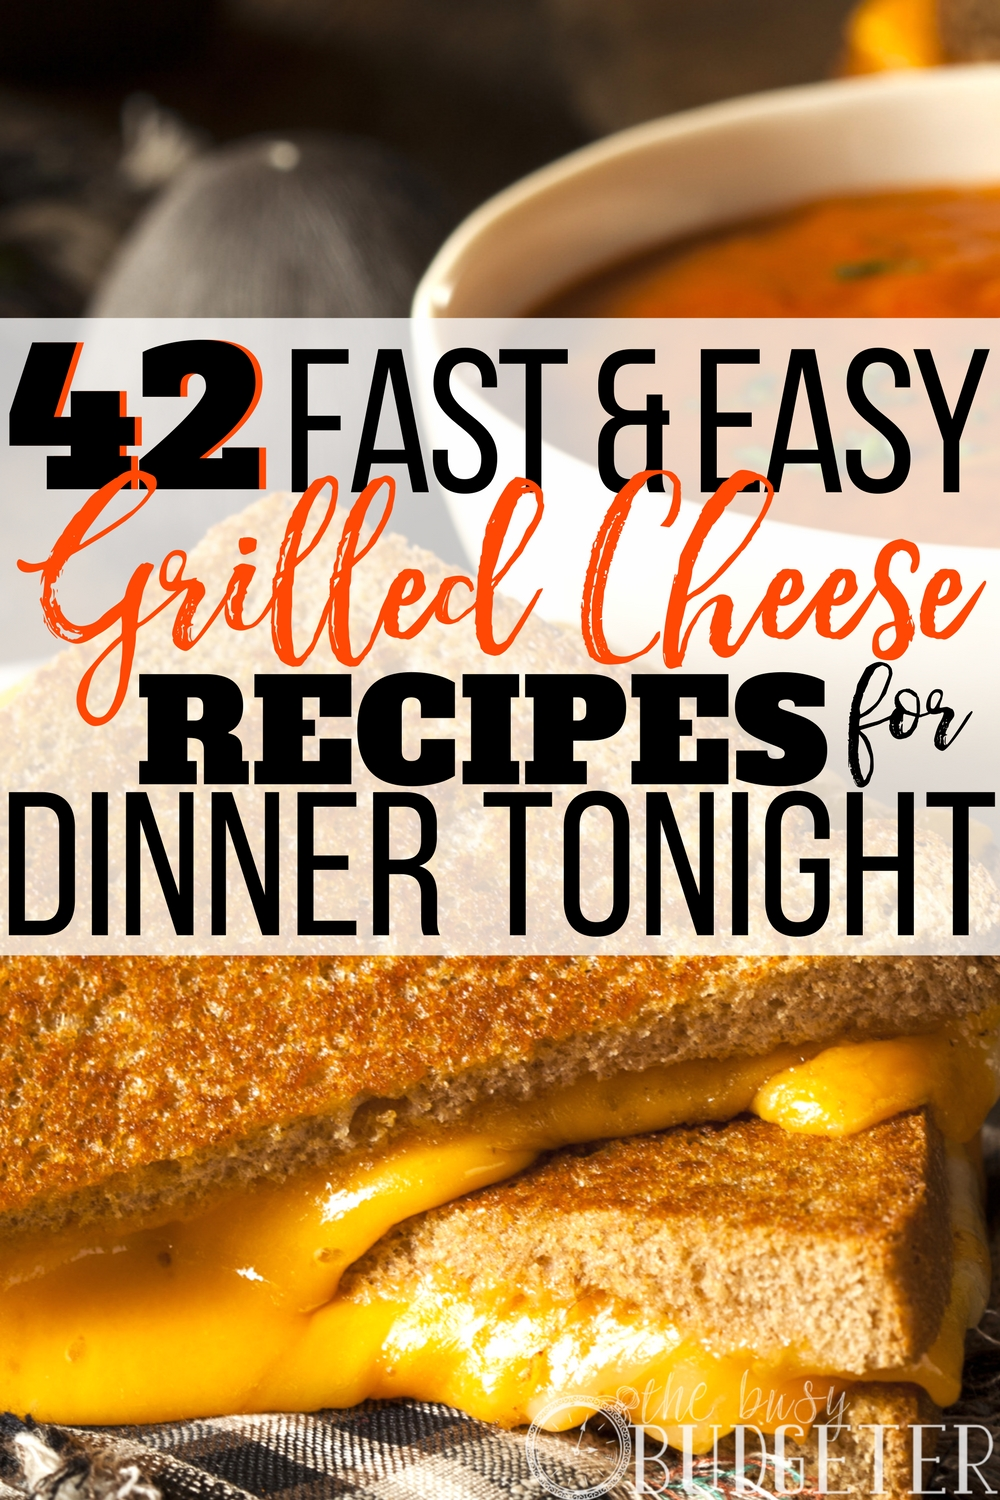 42 easy grilled cheese recipes for dinner tonight busy budgeter i literally had no idea there were this many ways to make so many easy grilled forumfinder Gallery